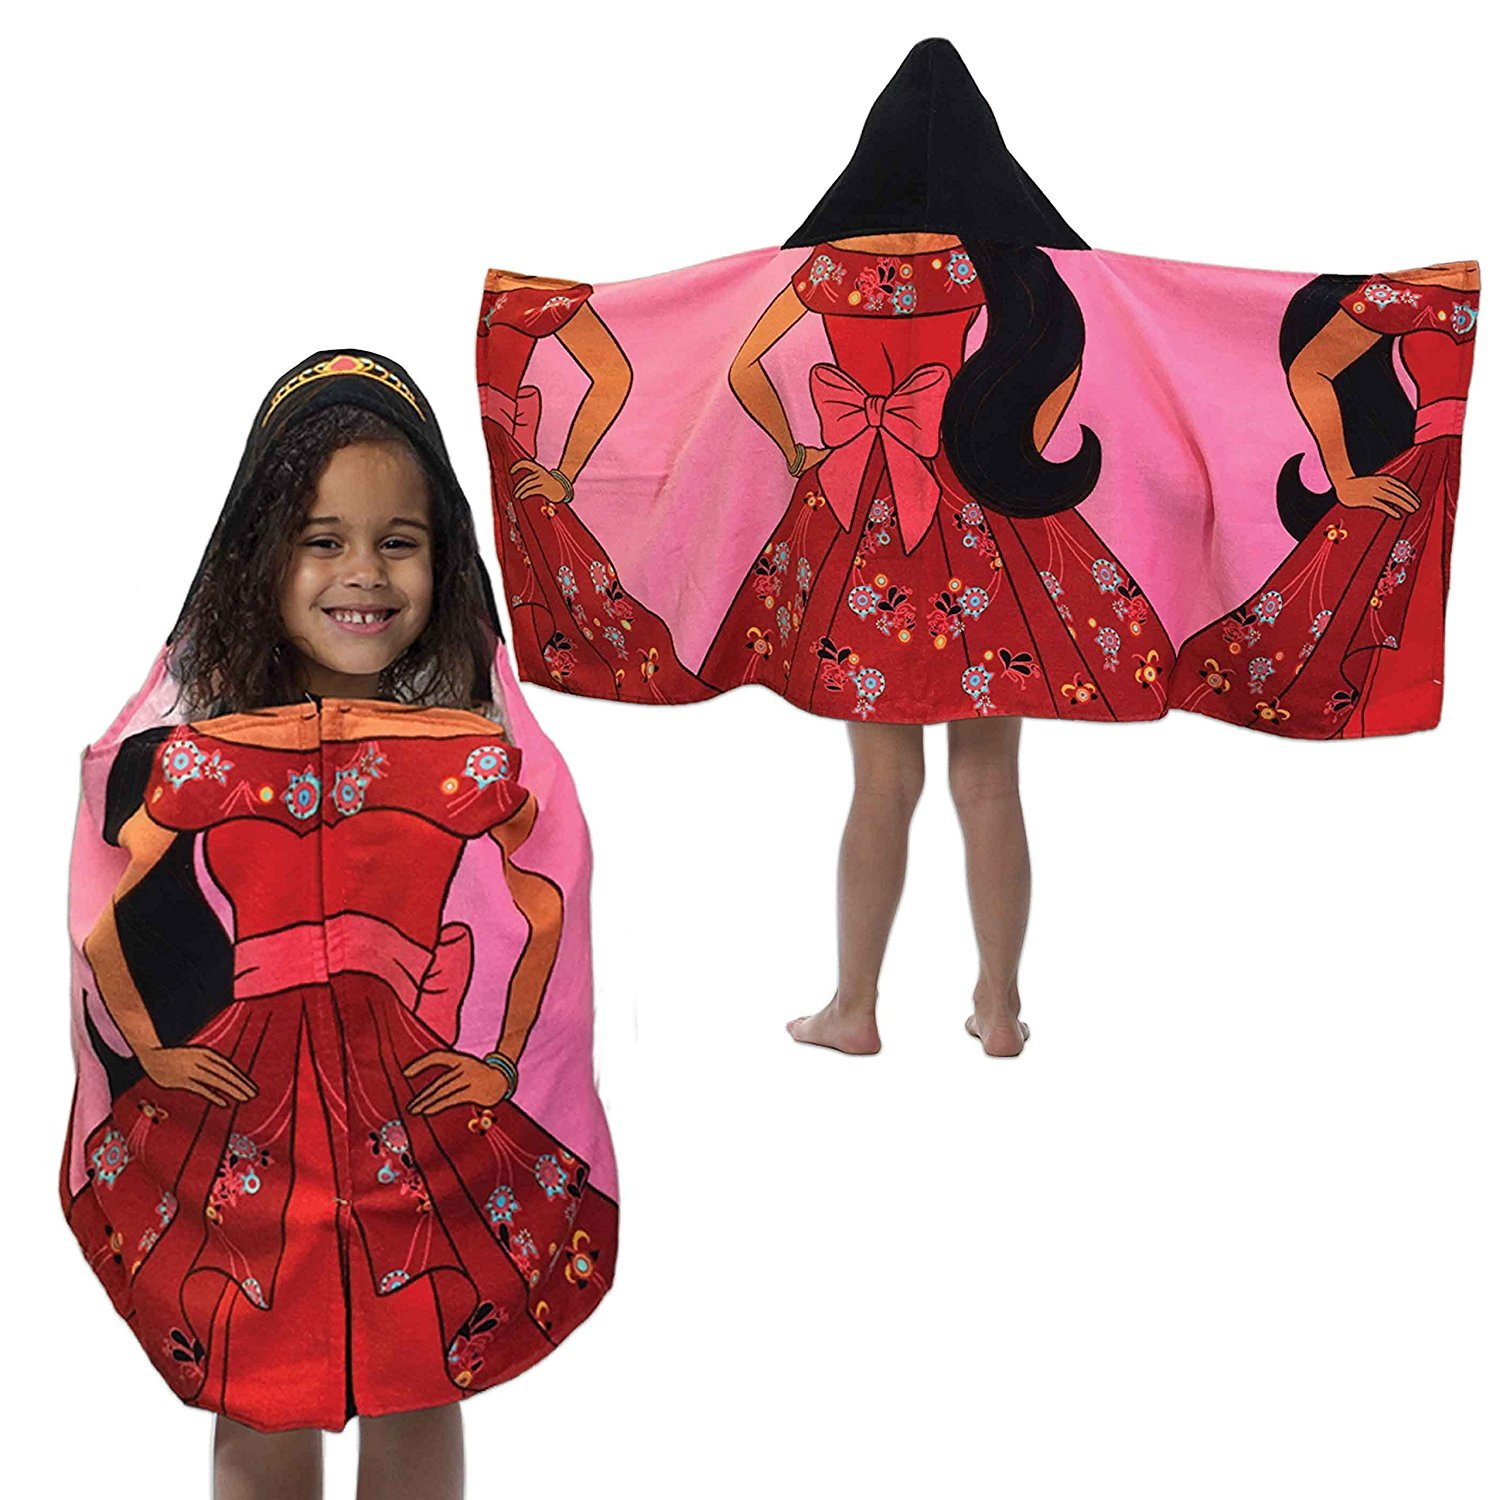 Disney Elena of Avalor - Hooded Bath Towel 100% Cotton, 22 in x 51 in (56 cm x 130 cm) by Jay Franco and Sons, Inc. (Image #1)